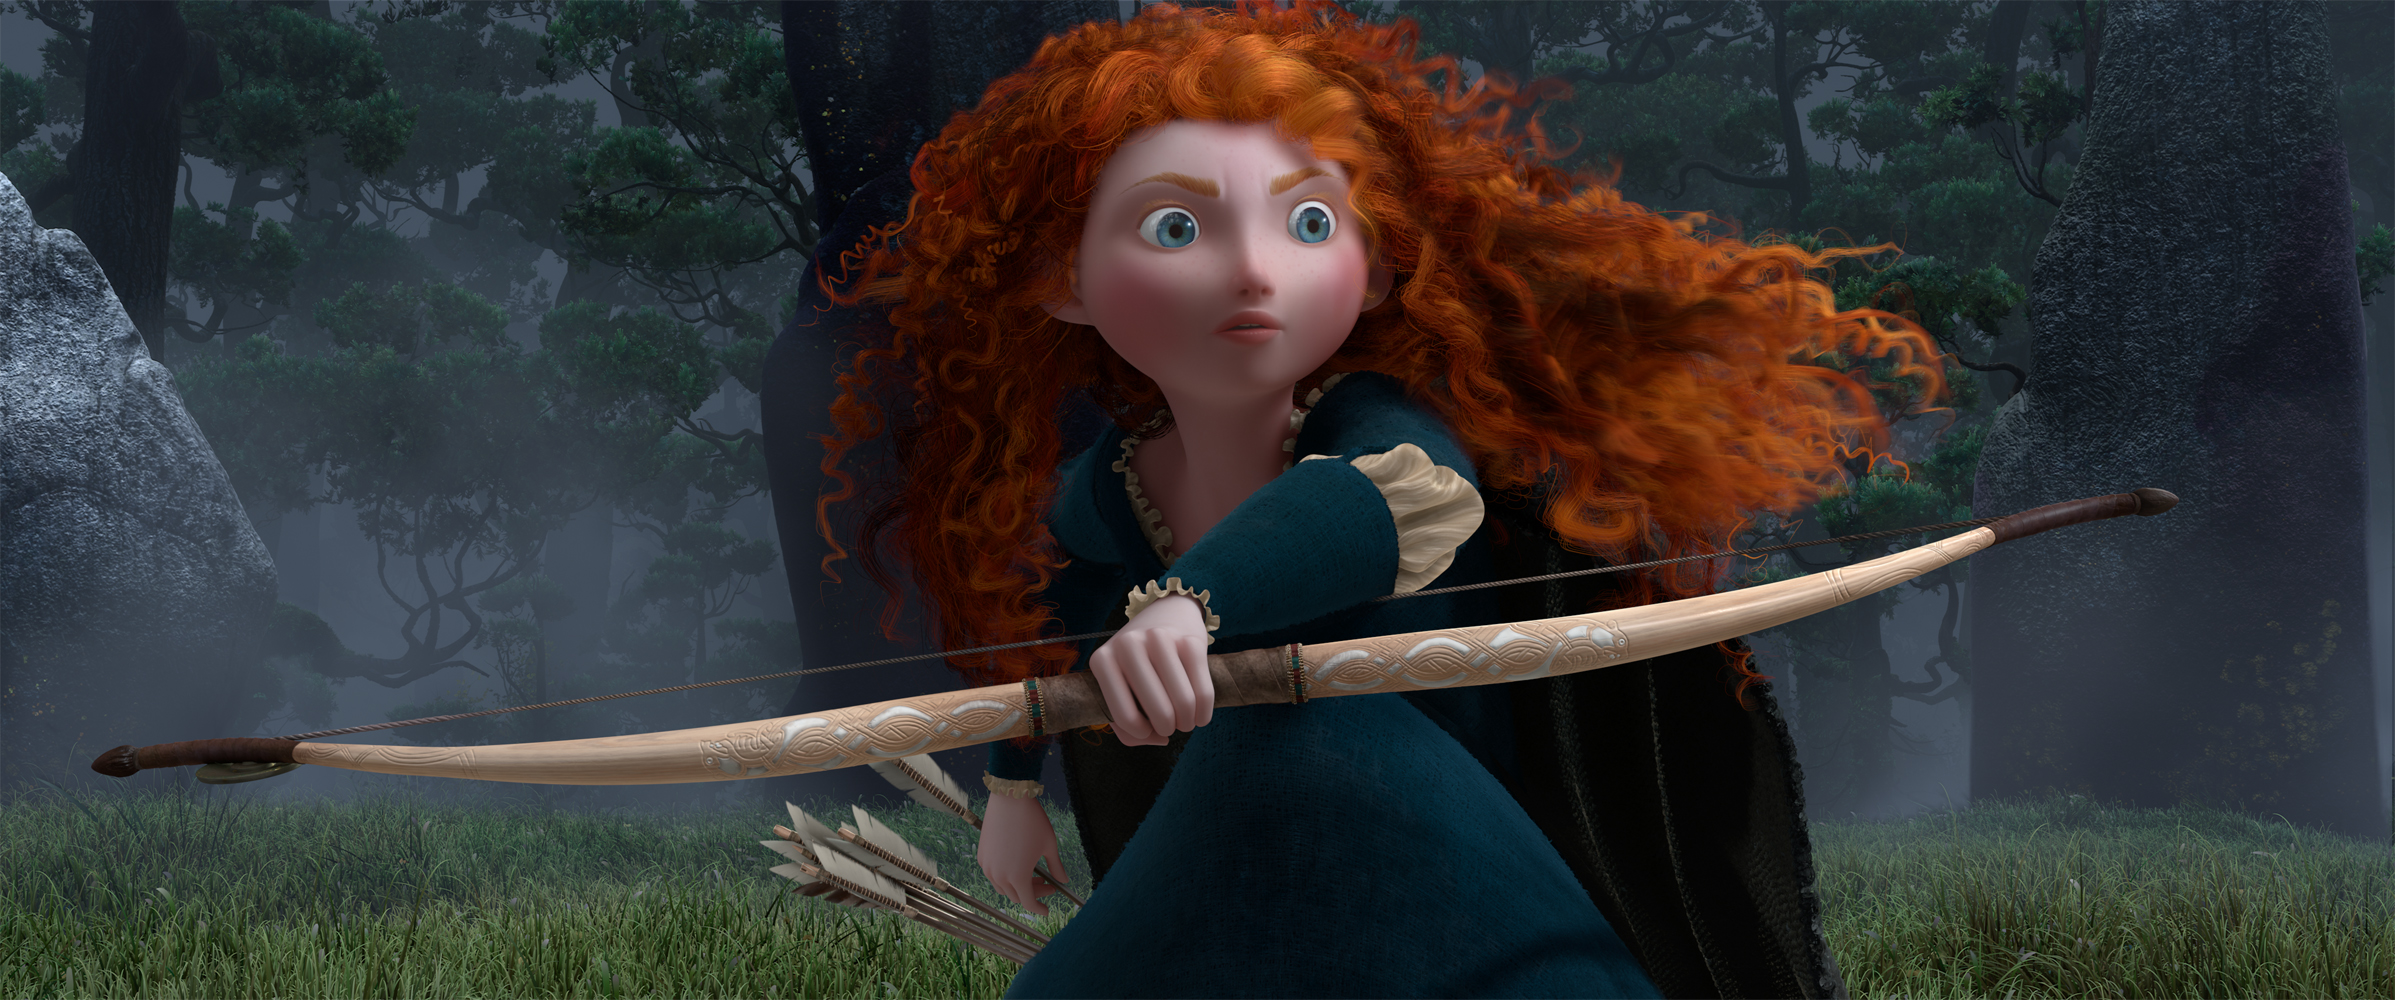 Image result for brave pixar